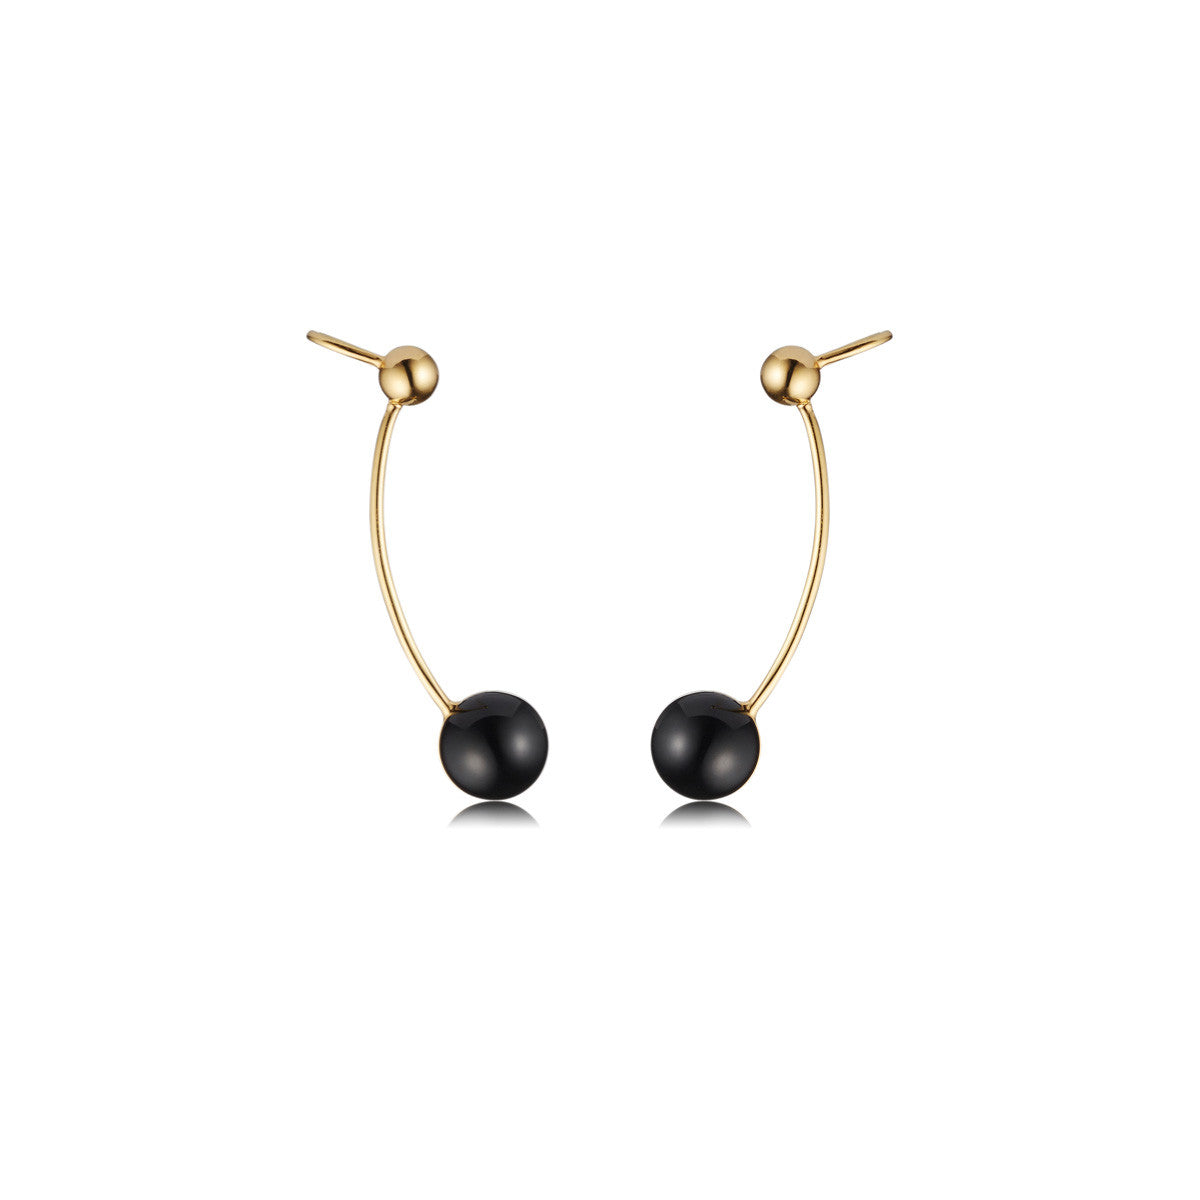 Solid brass, 18K gold plated Stella Crinita ear cuffs are set in hand cut natural black onyx - front